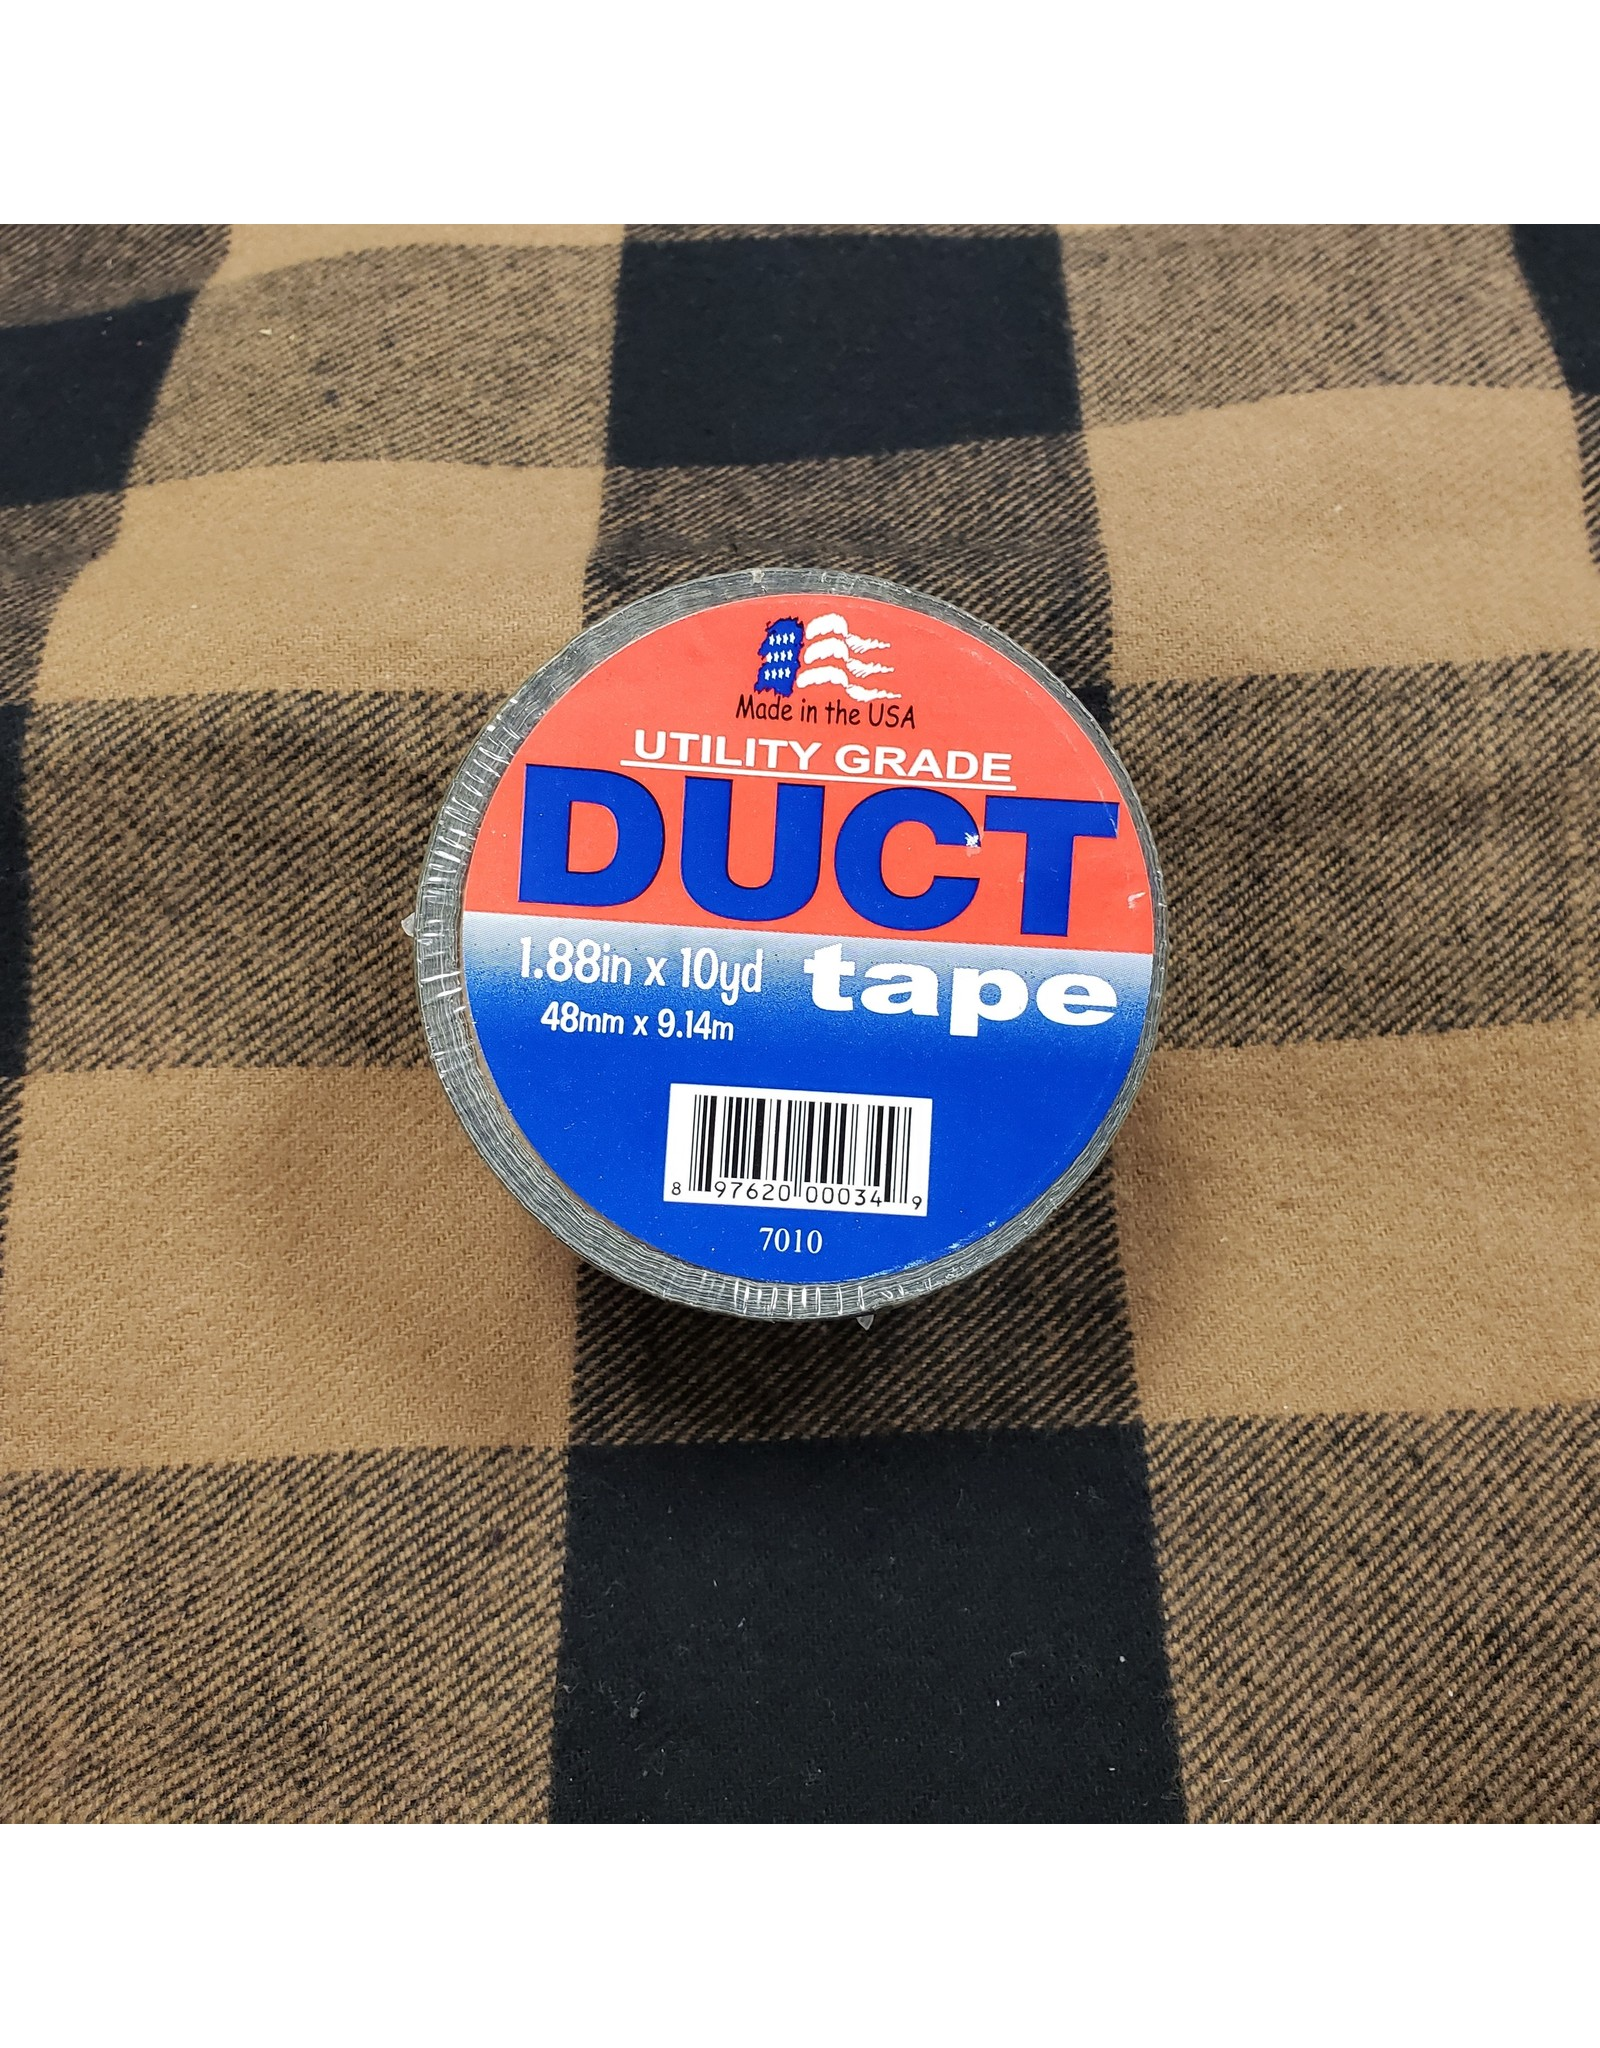 FOX TACTICAL GEAR FOX TACTICAL CAMOUFLAGE DUCT TAPE 1.88IN X 10YD - 7010